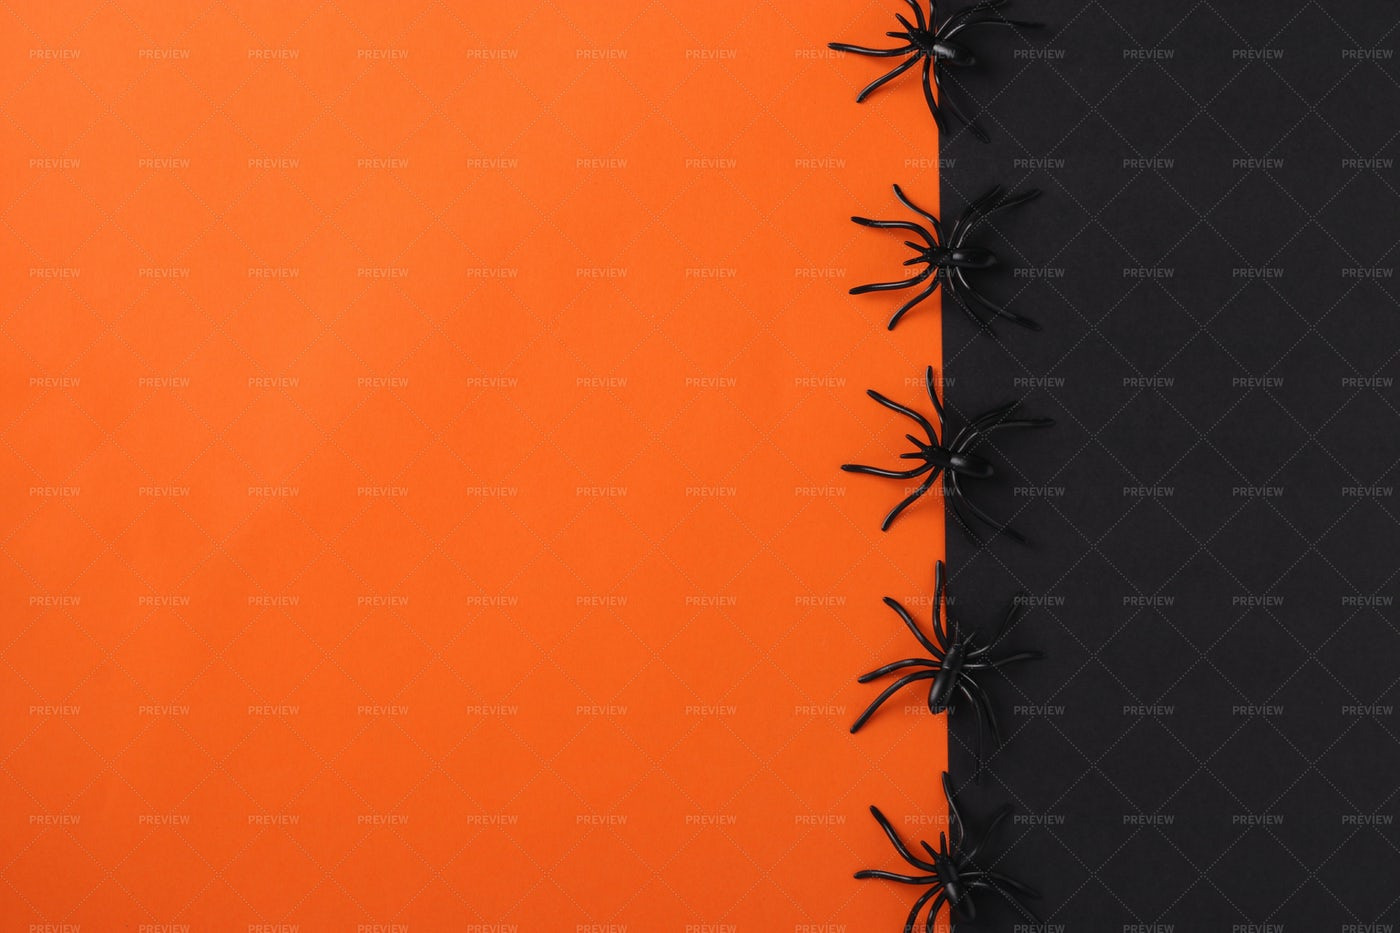 Halloween Background With Spiders: Stock Photos